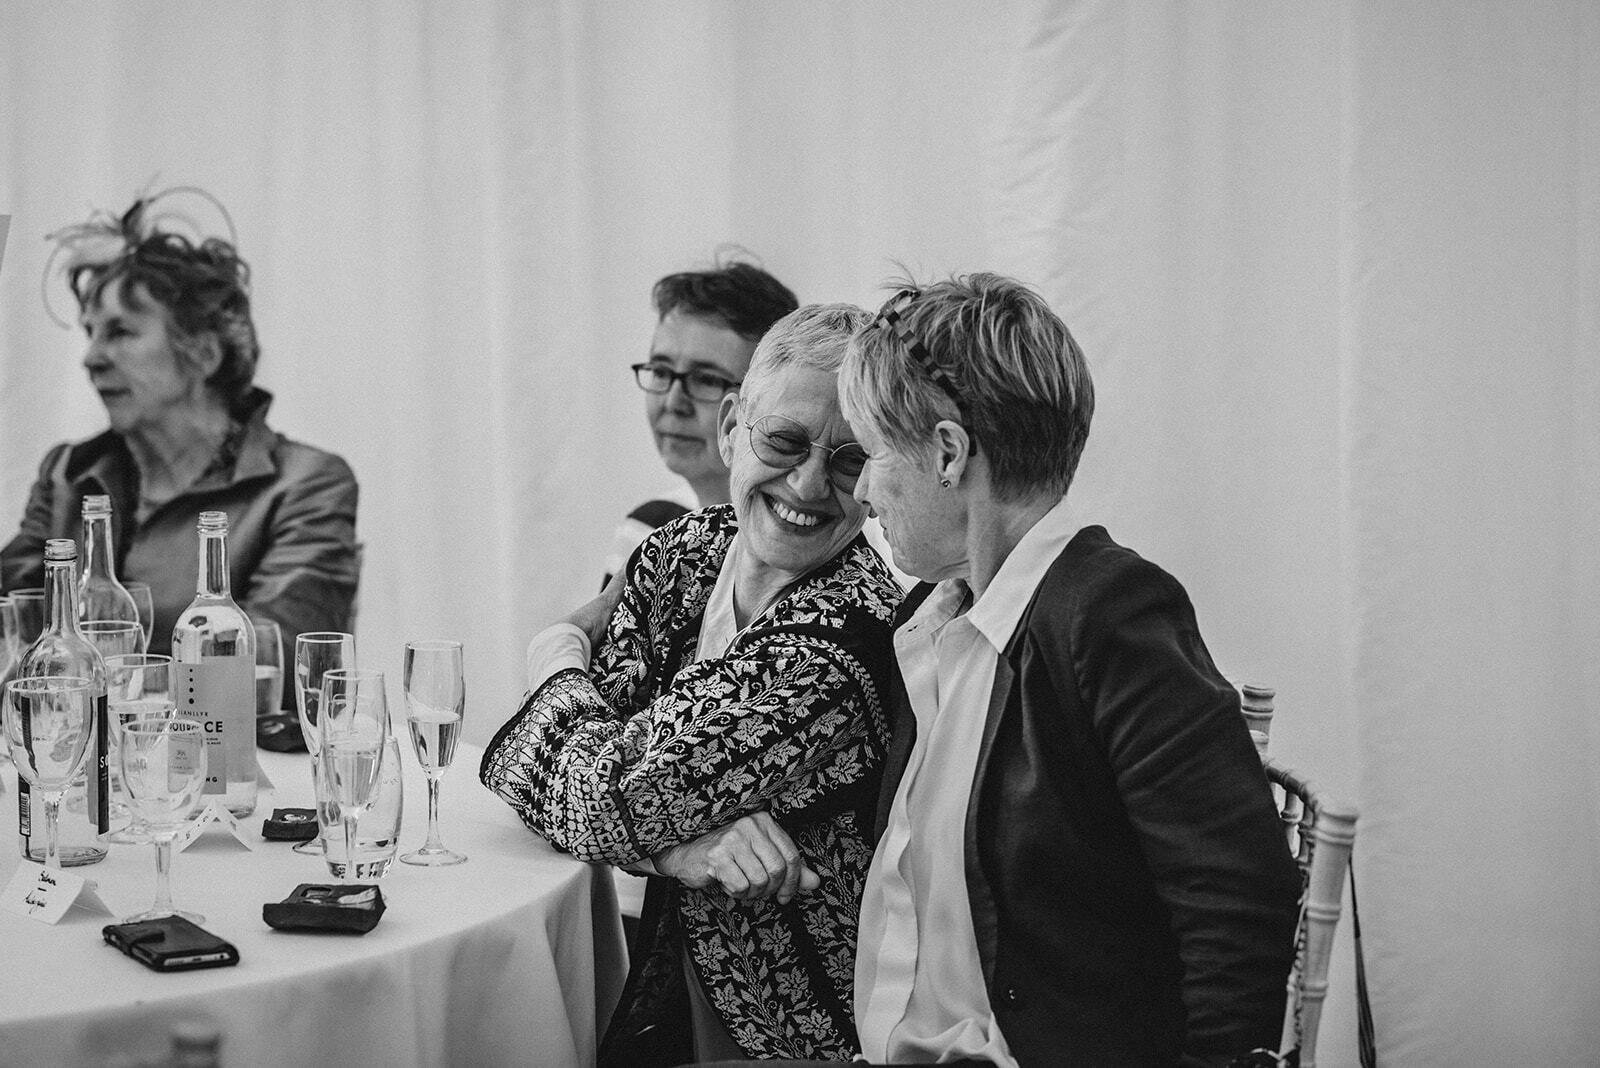 Guests look at each other affectionally during a wedding